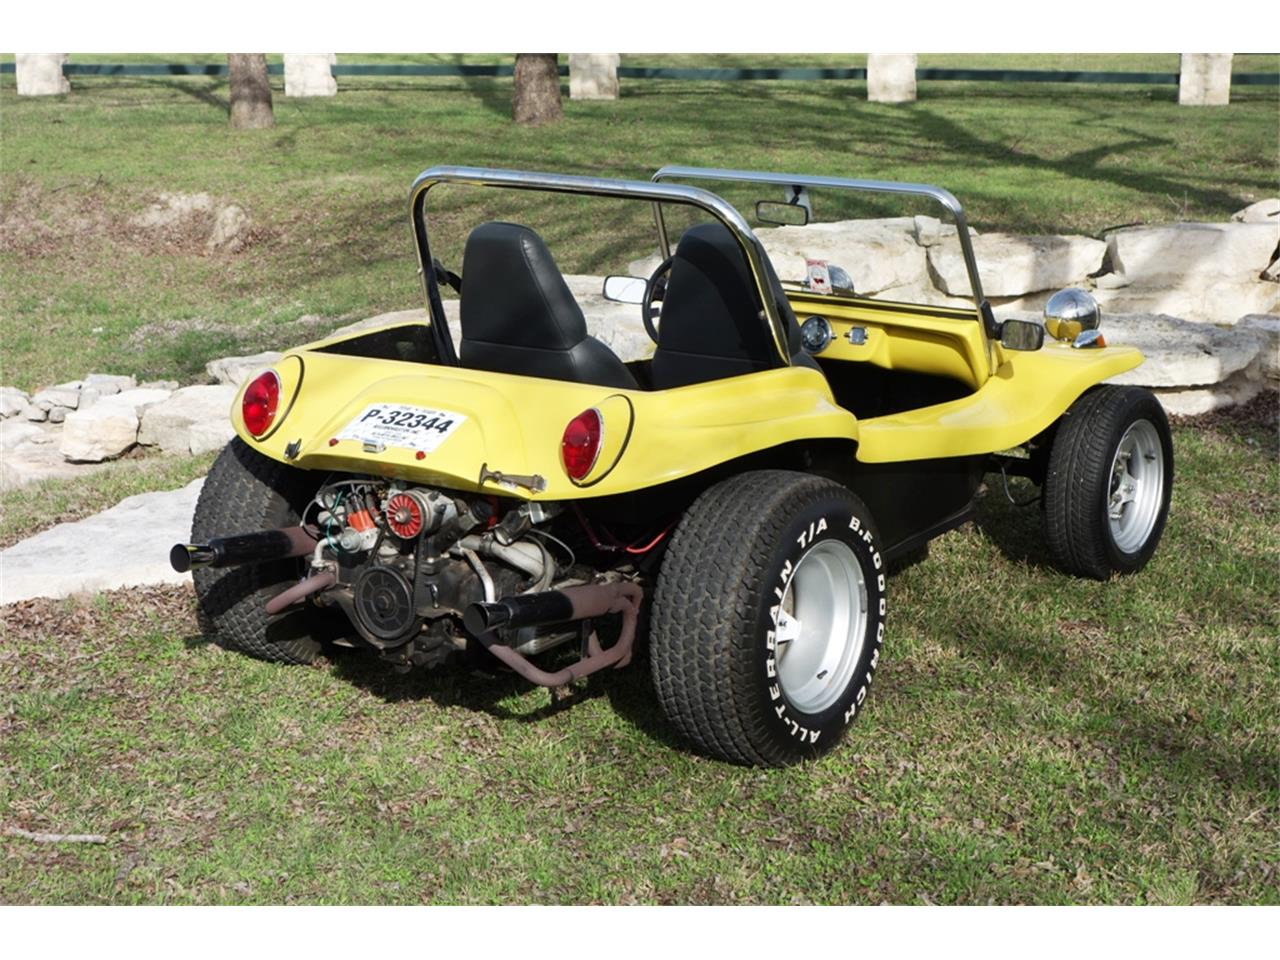 Vw Dune Buggy >> 1967 Volkswagen Dune Buggy For Sale Classiccars Com Cc